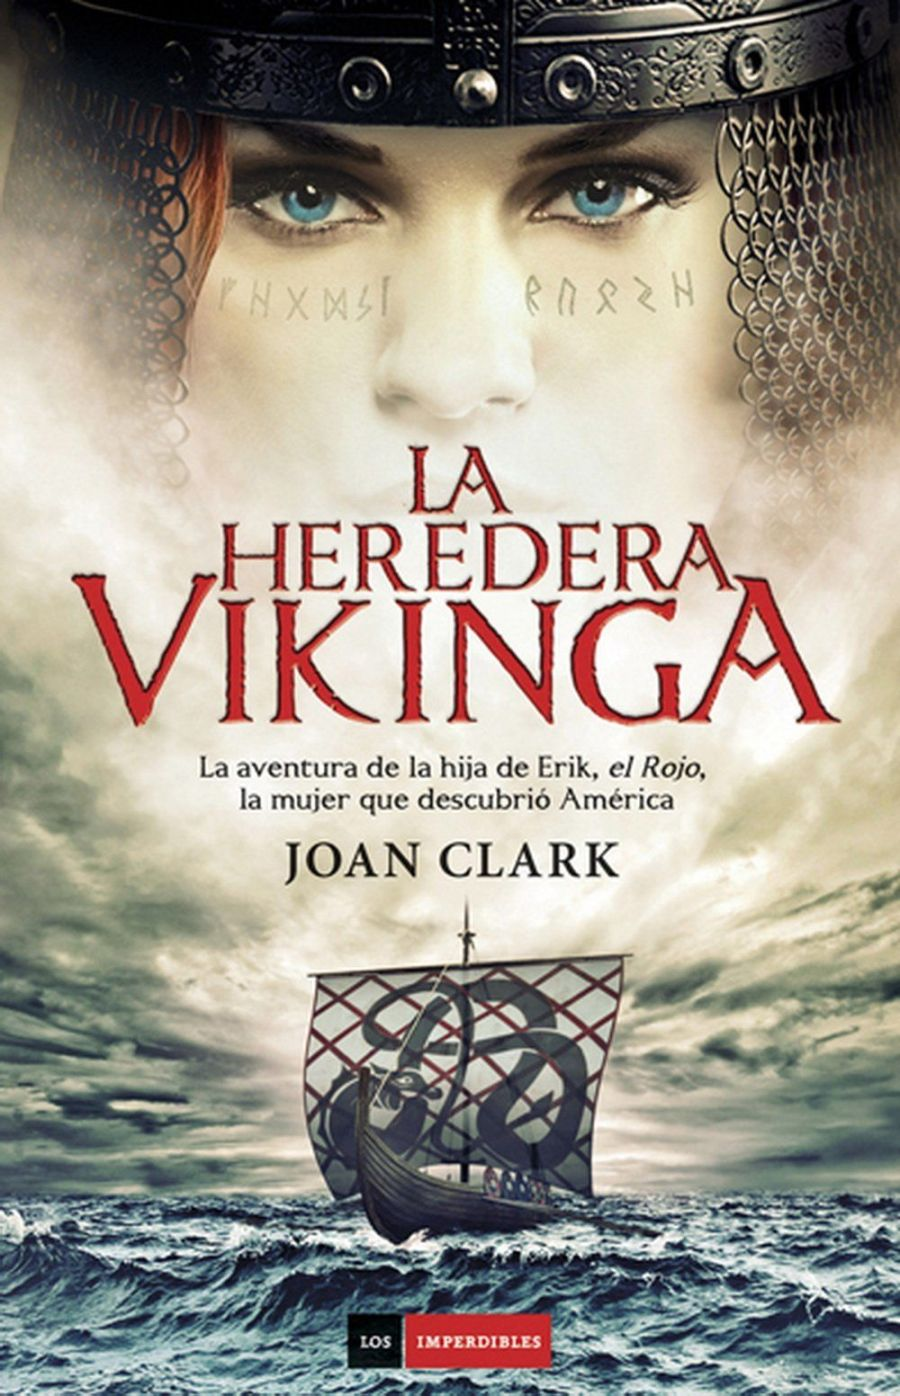 La heredera vikinga Book Cover